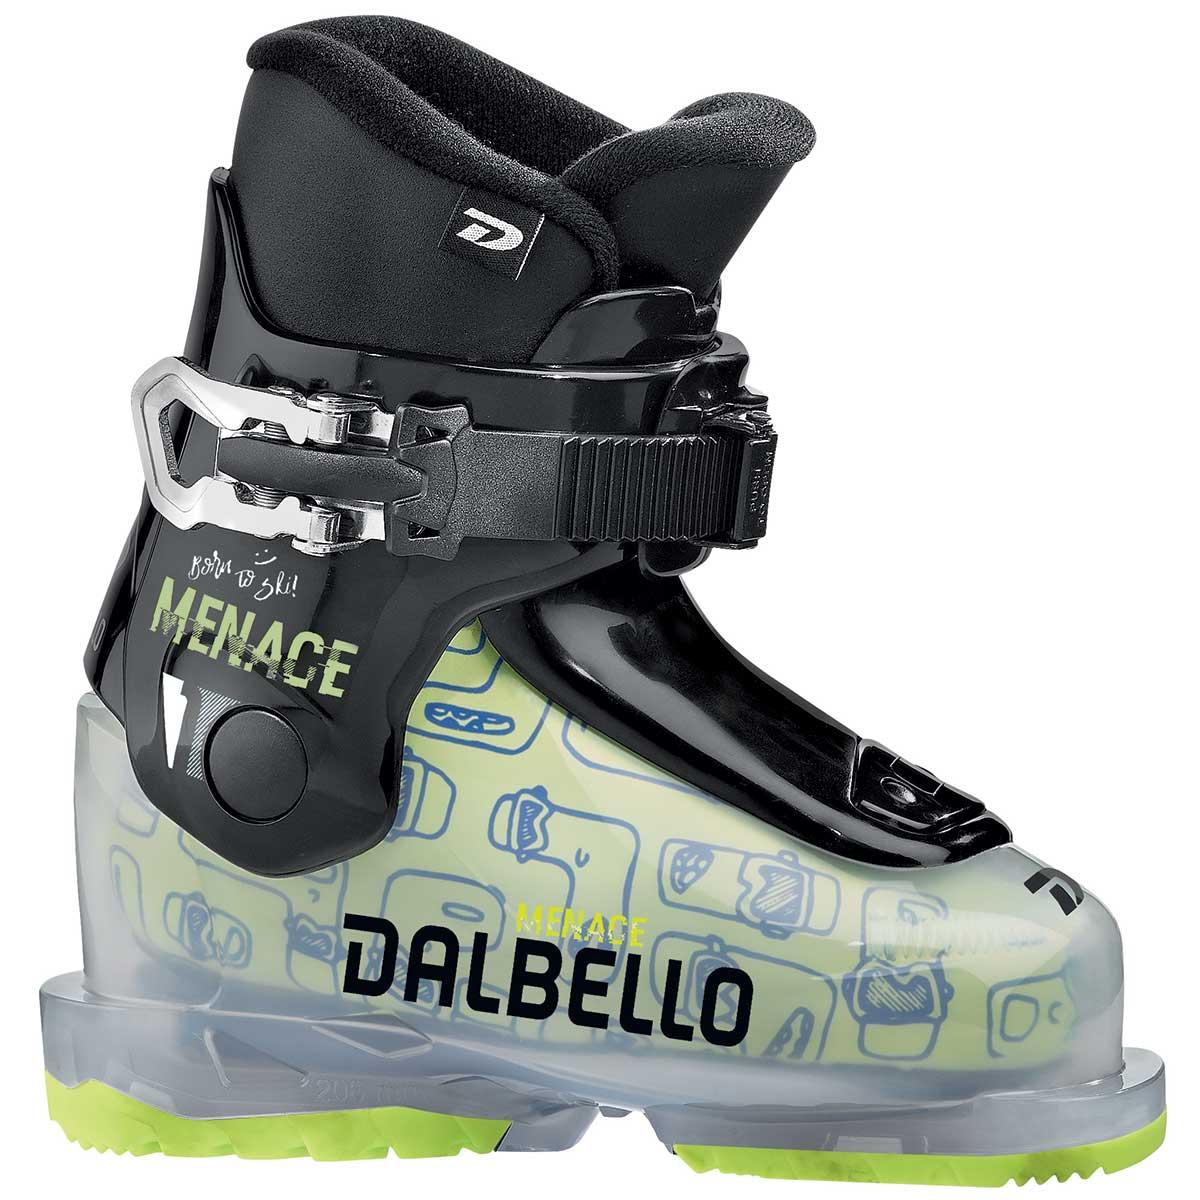 Dalbello Menace 1 junior ski boot in trans black